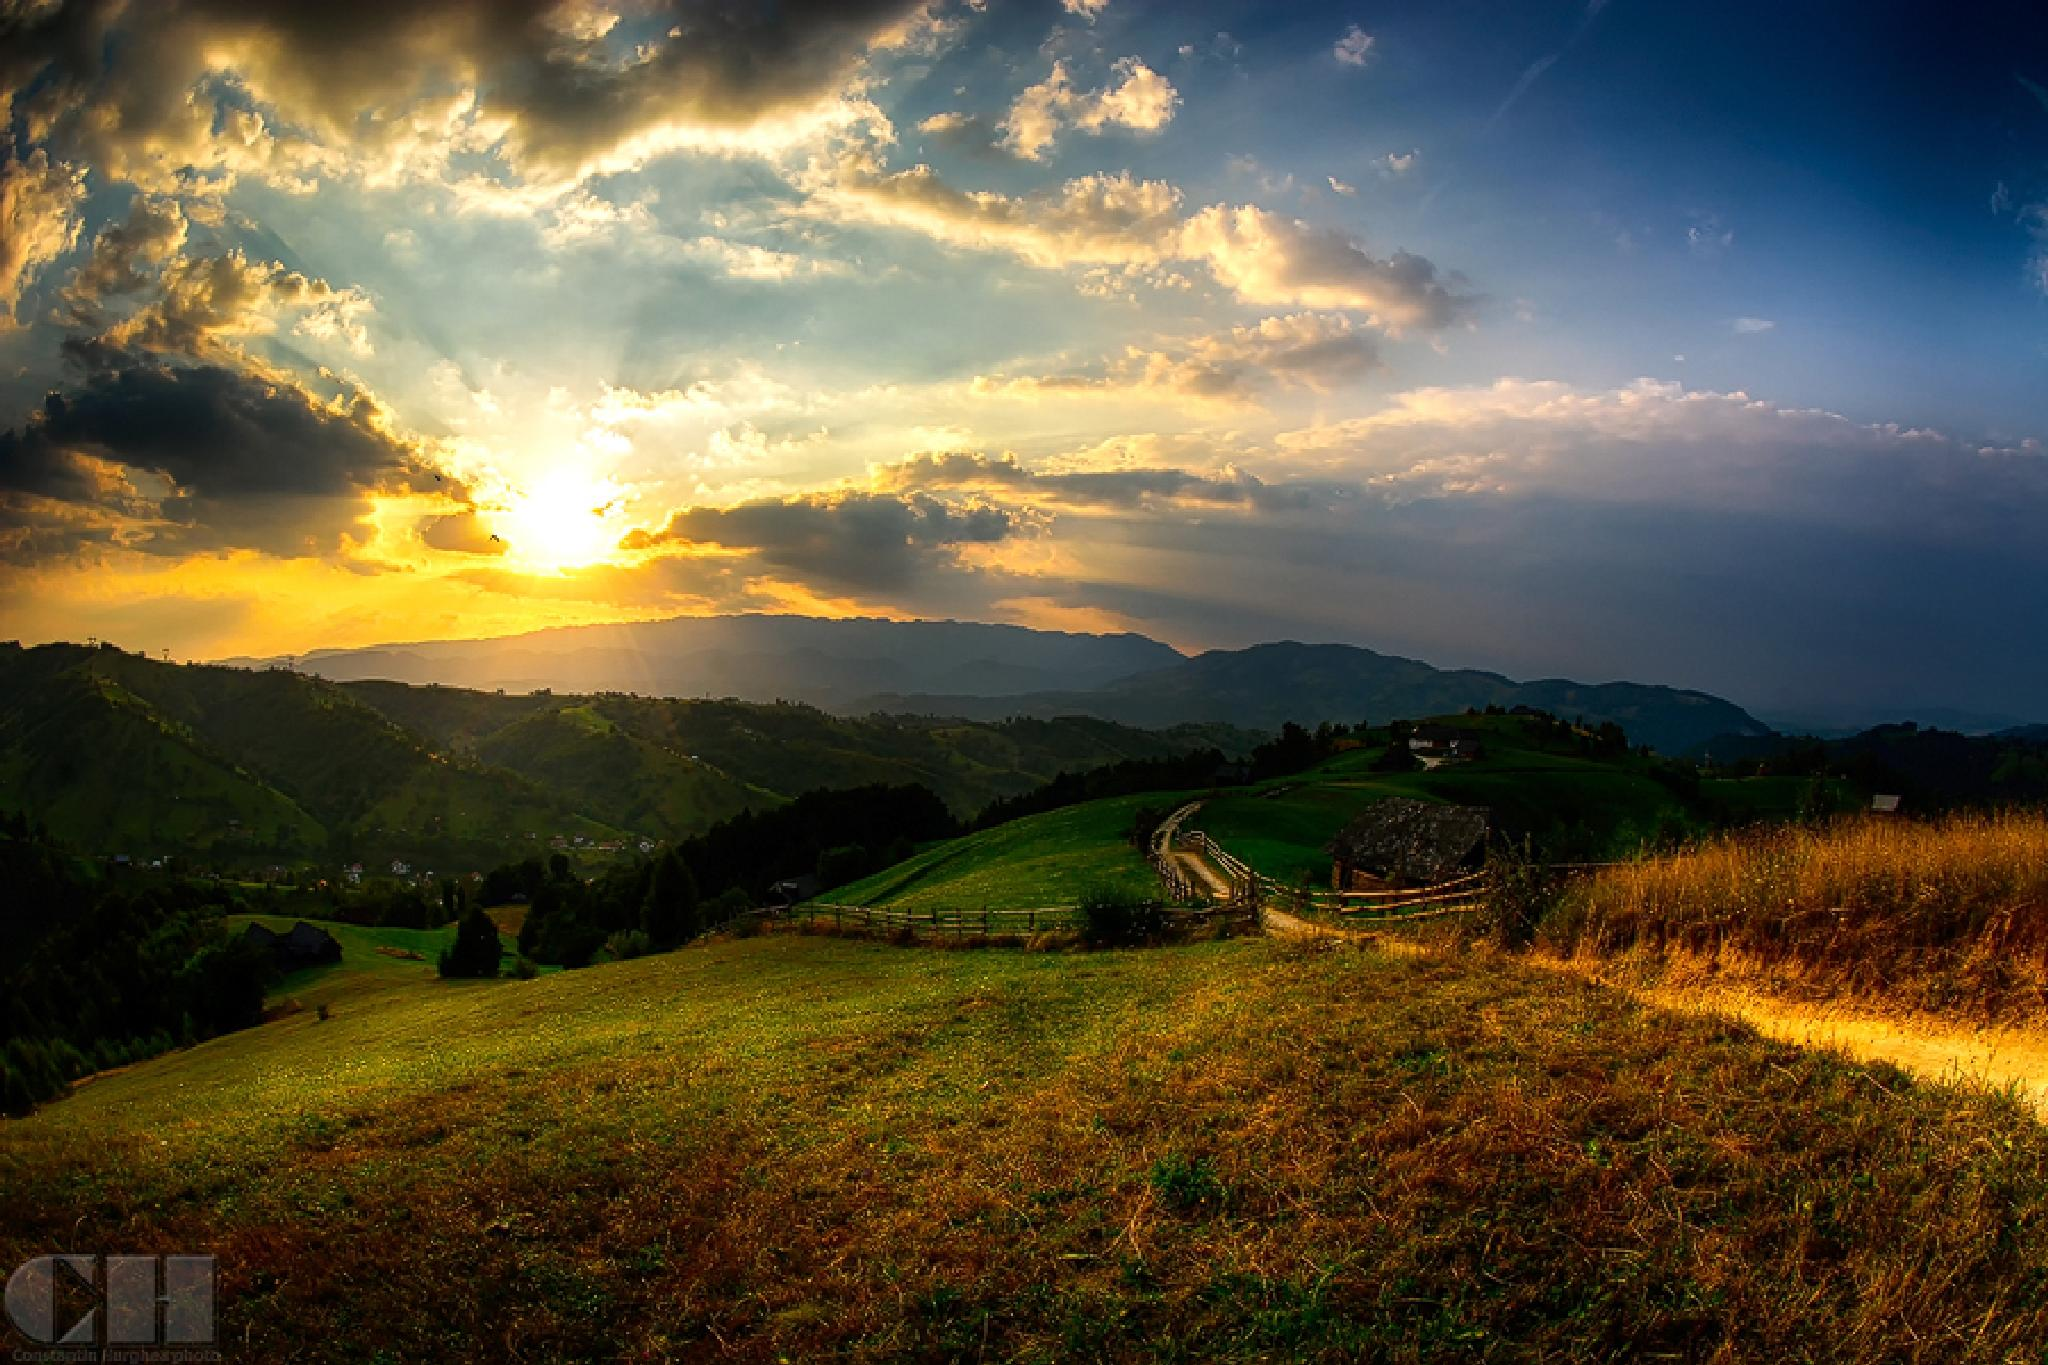 the story of a summer sunset by constantin.hurghea